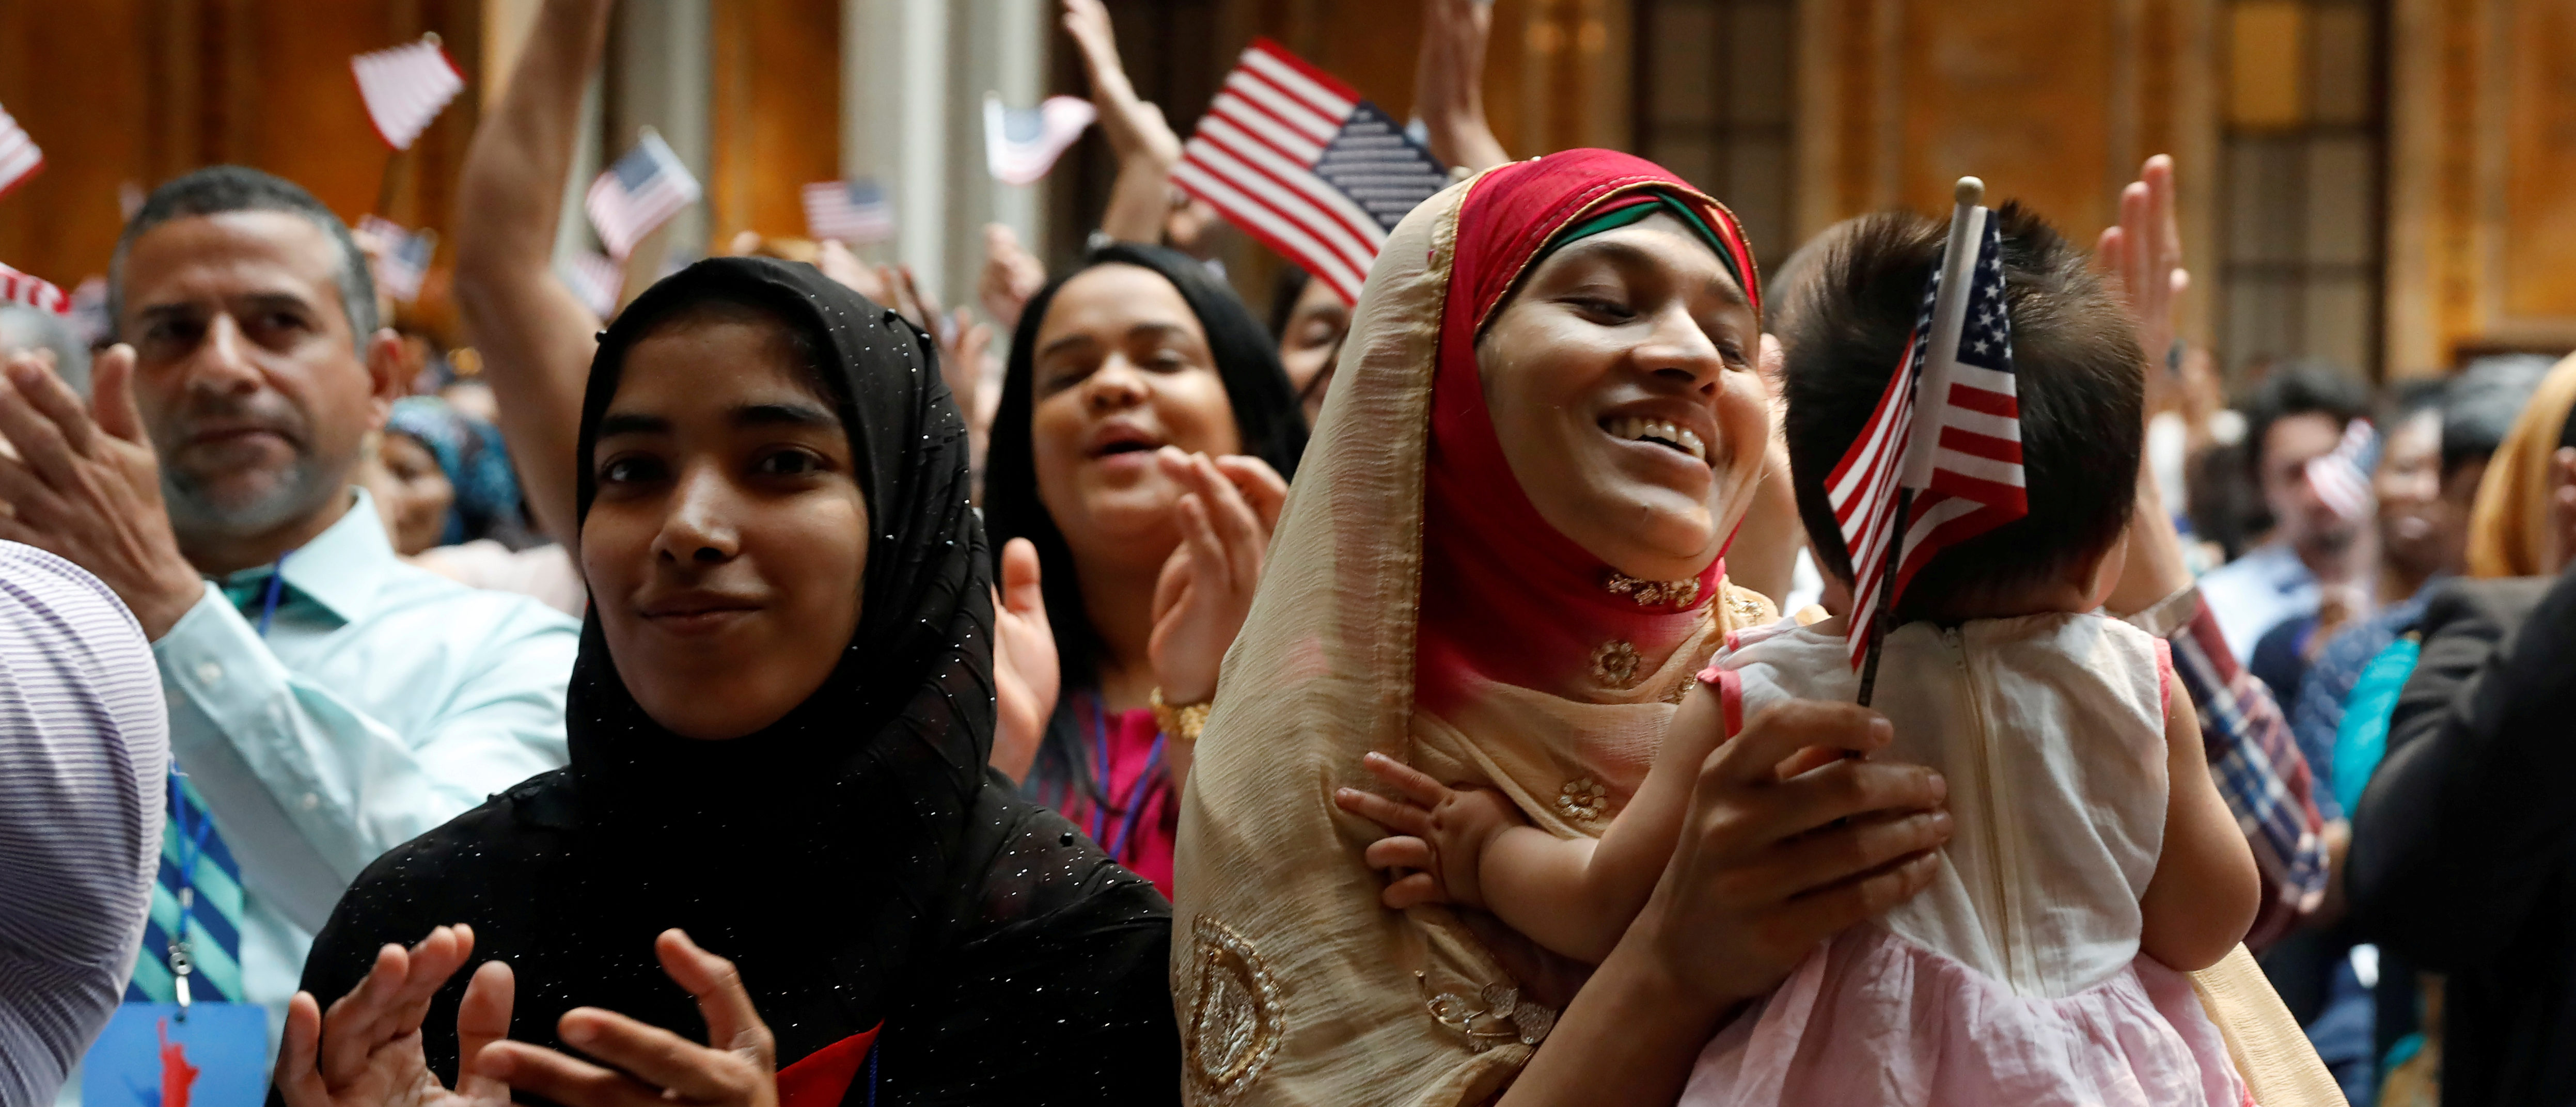 New citizens smile at a U.S. Citizenship and Immigration Services (USCIS) naturalization ceremony at the New York Public Library in Manhattan